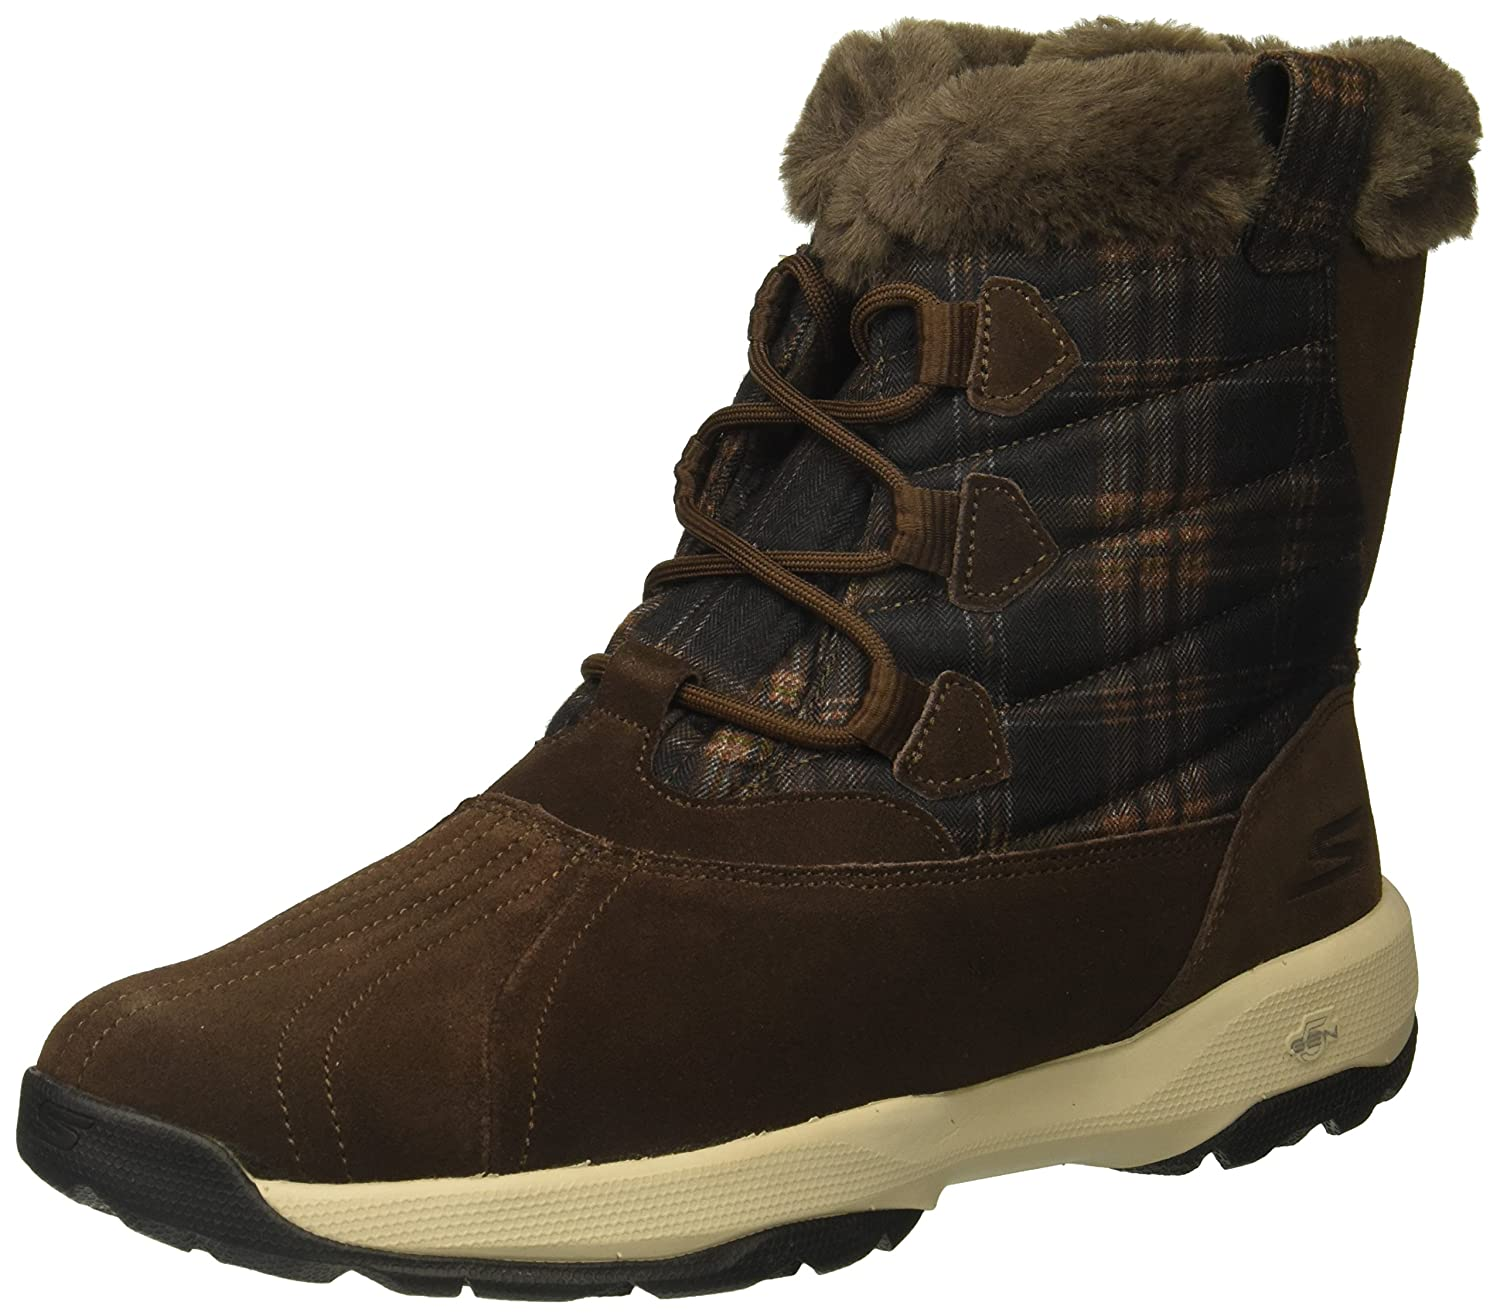 Skechers SkechersGo Walk Outdoors - Crest - Go Walk Outdoors - Crest Damen  39 EU|Schokoladenbraun